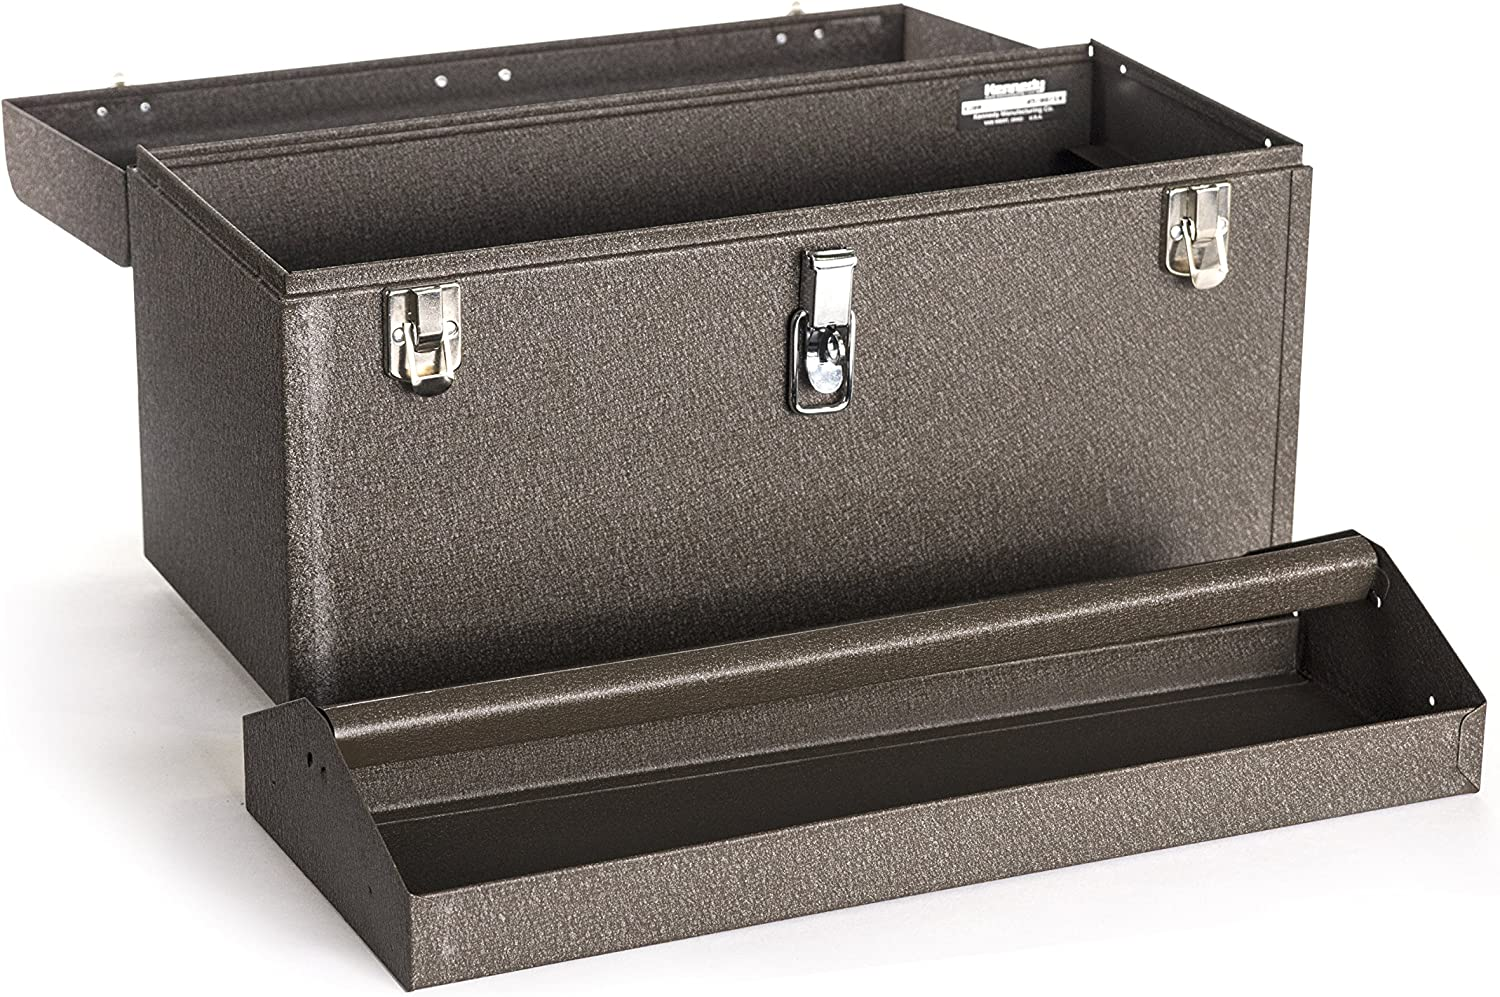 Tan Brown Wrinkle Kennedy Manufacturing 620B 20 3-Drawer Machinists Steel Tool Storage Chest